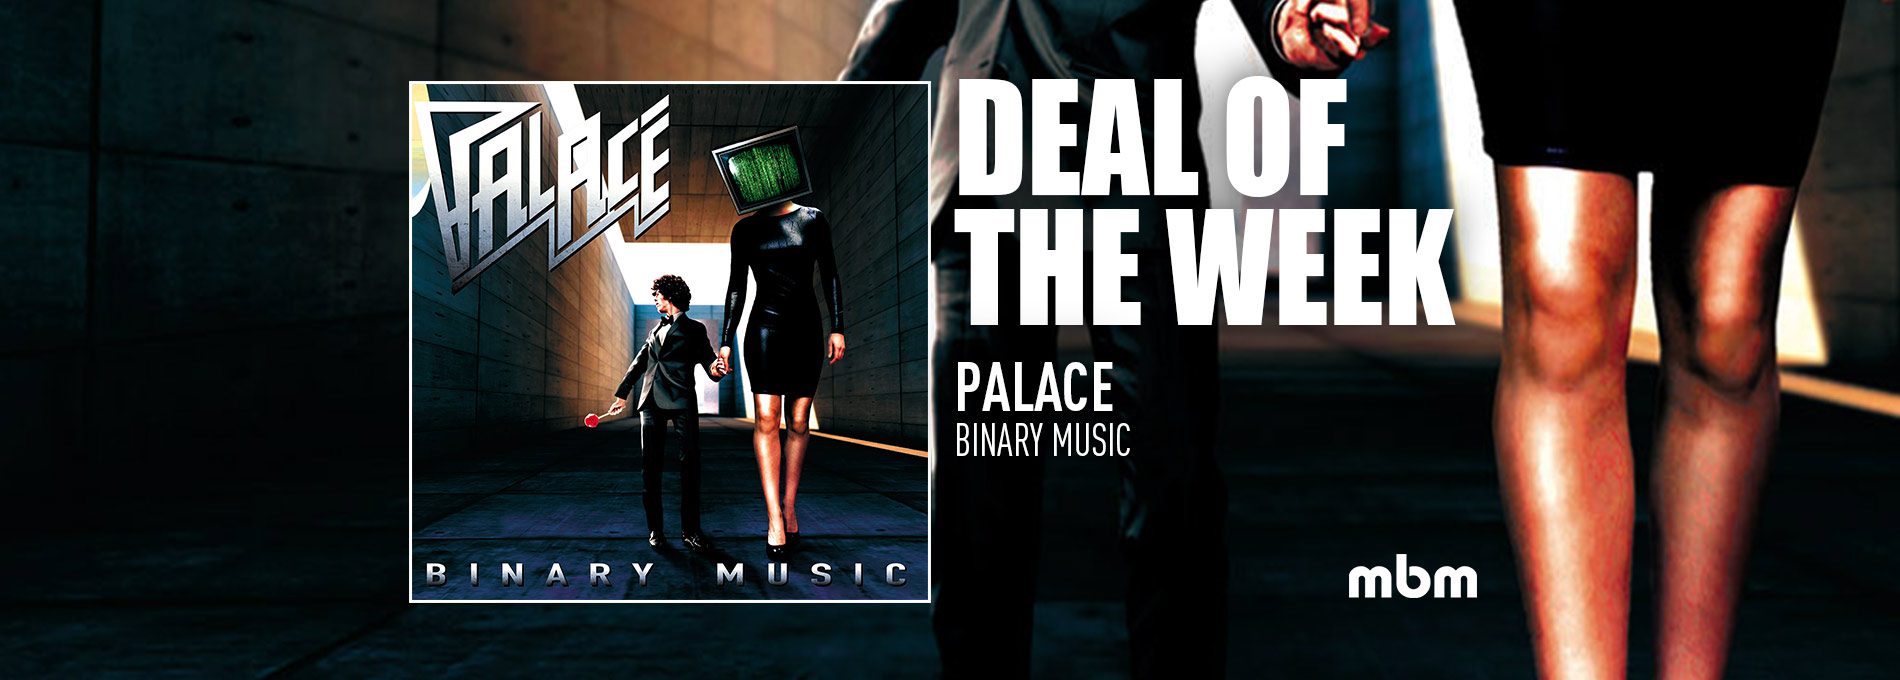 Deal Of The Week: PALACE - Binary Music